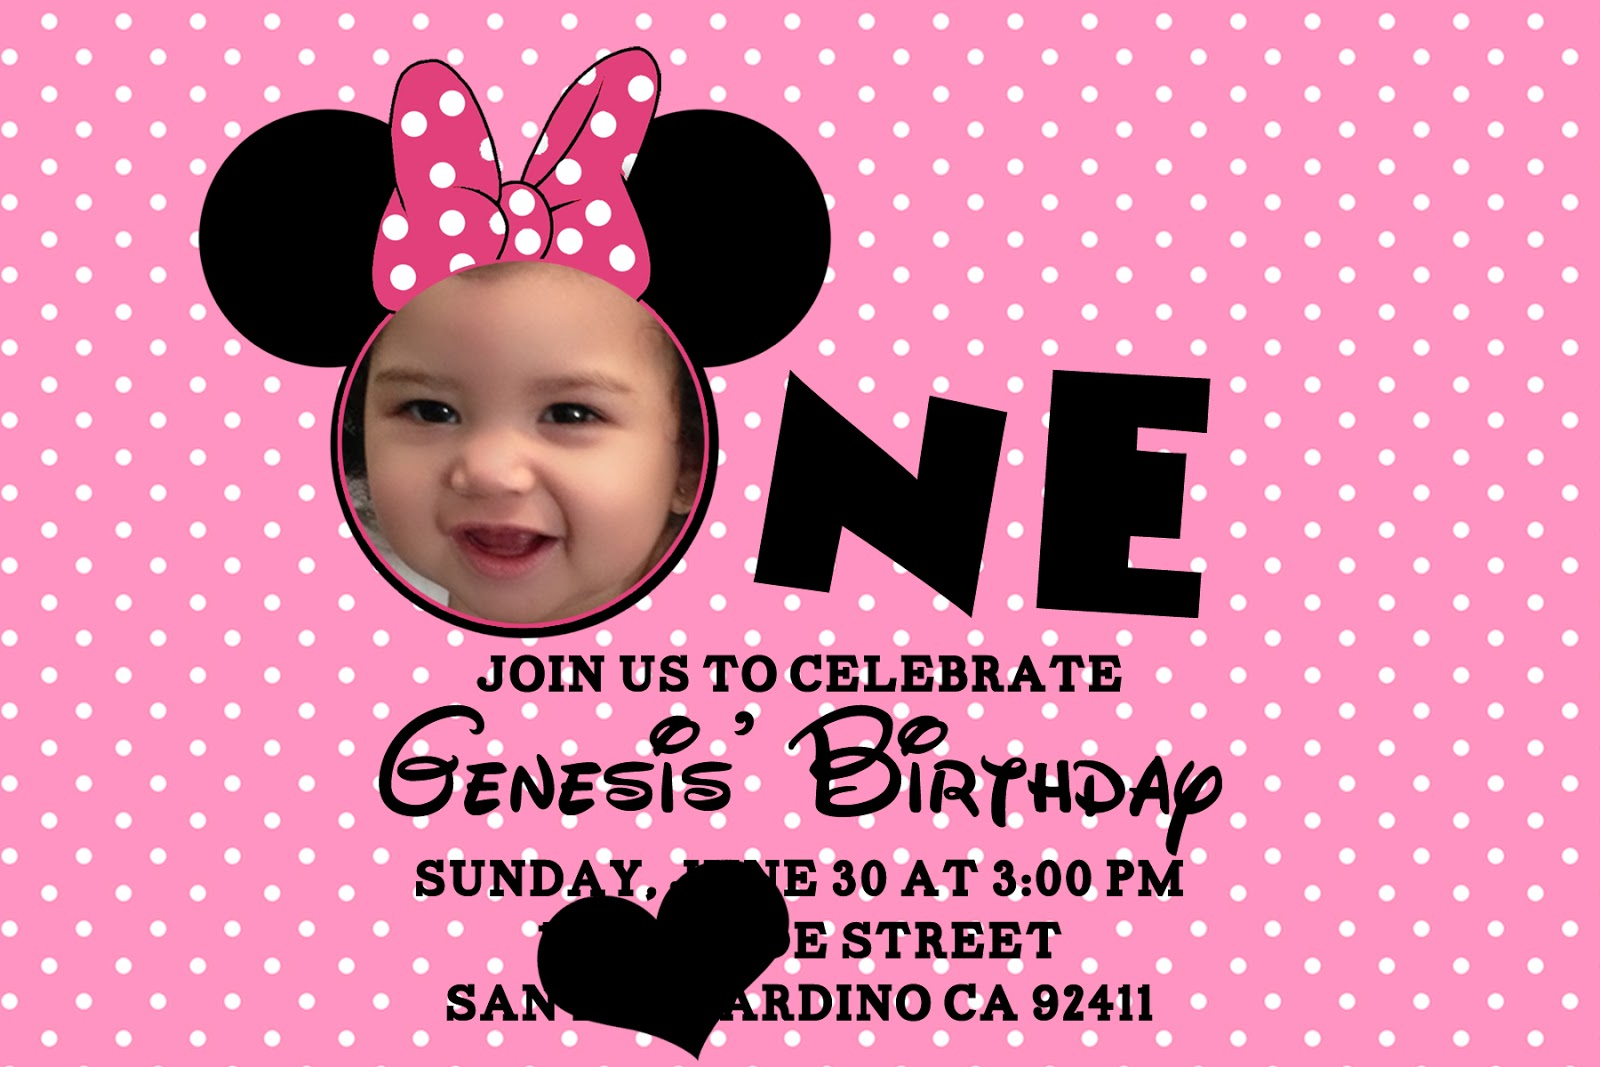 minnie mouse birthday invitation layout ; minnie-mouse-birthday-invitation-templates-free-with-lovely-Birthday-Invitation-Templates-as-a-result-of-an-application-using-a-felicitous-concept-17